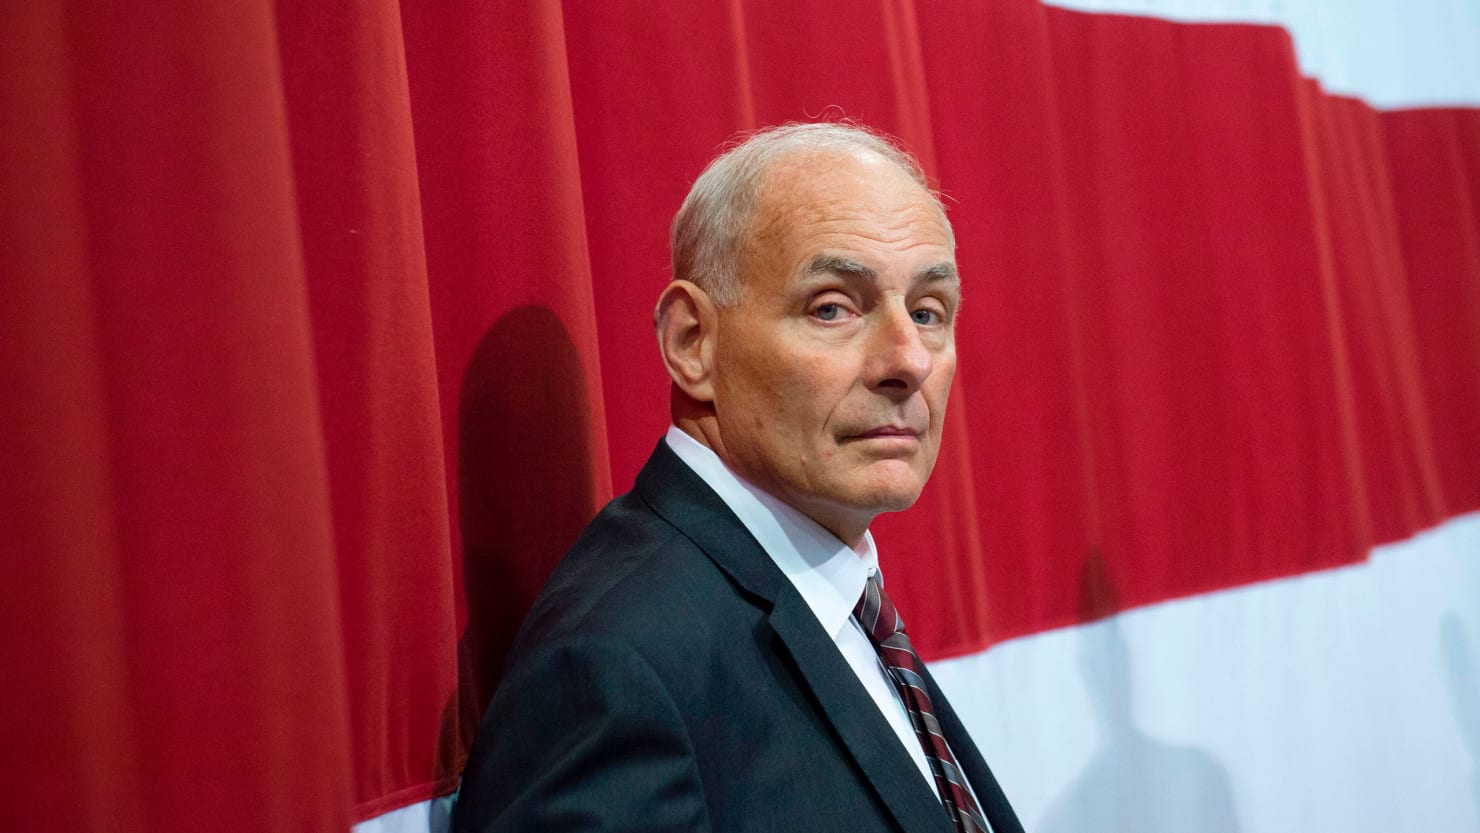 John Kelly Is Out As Donald Trump's Chief of Staff